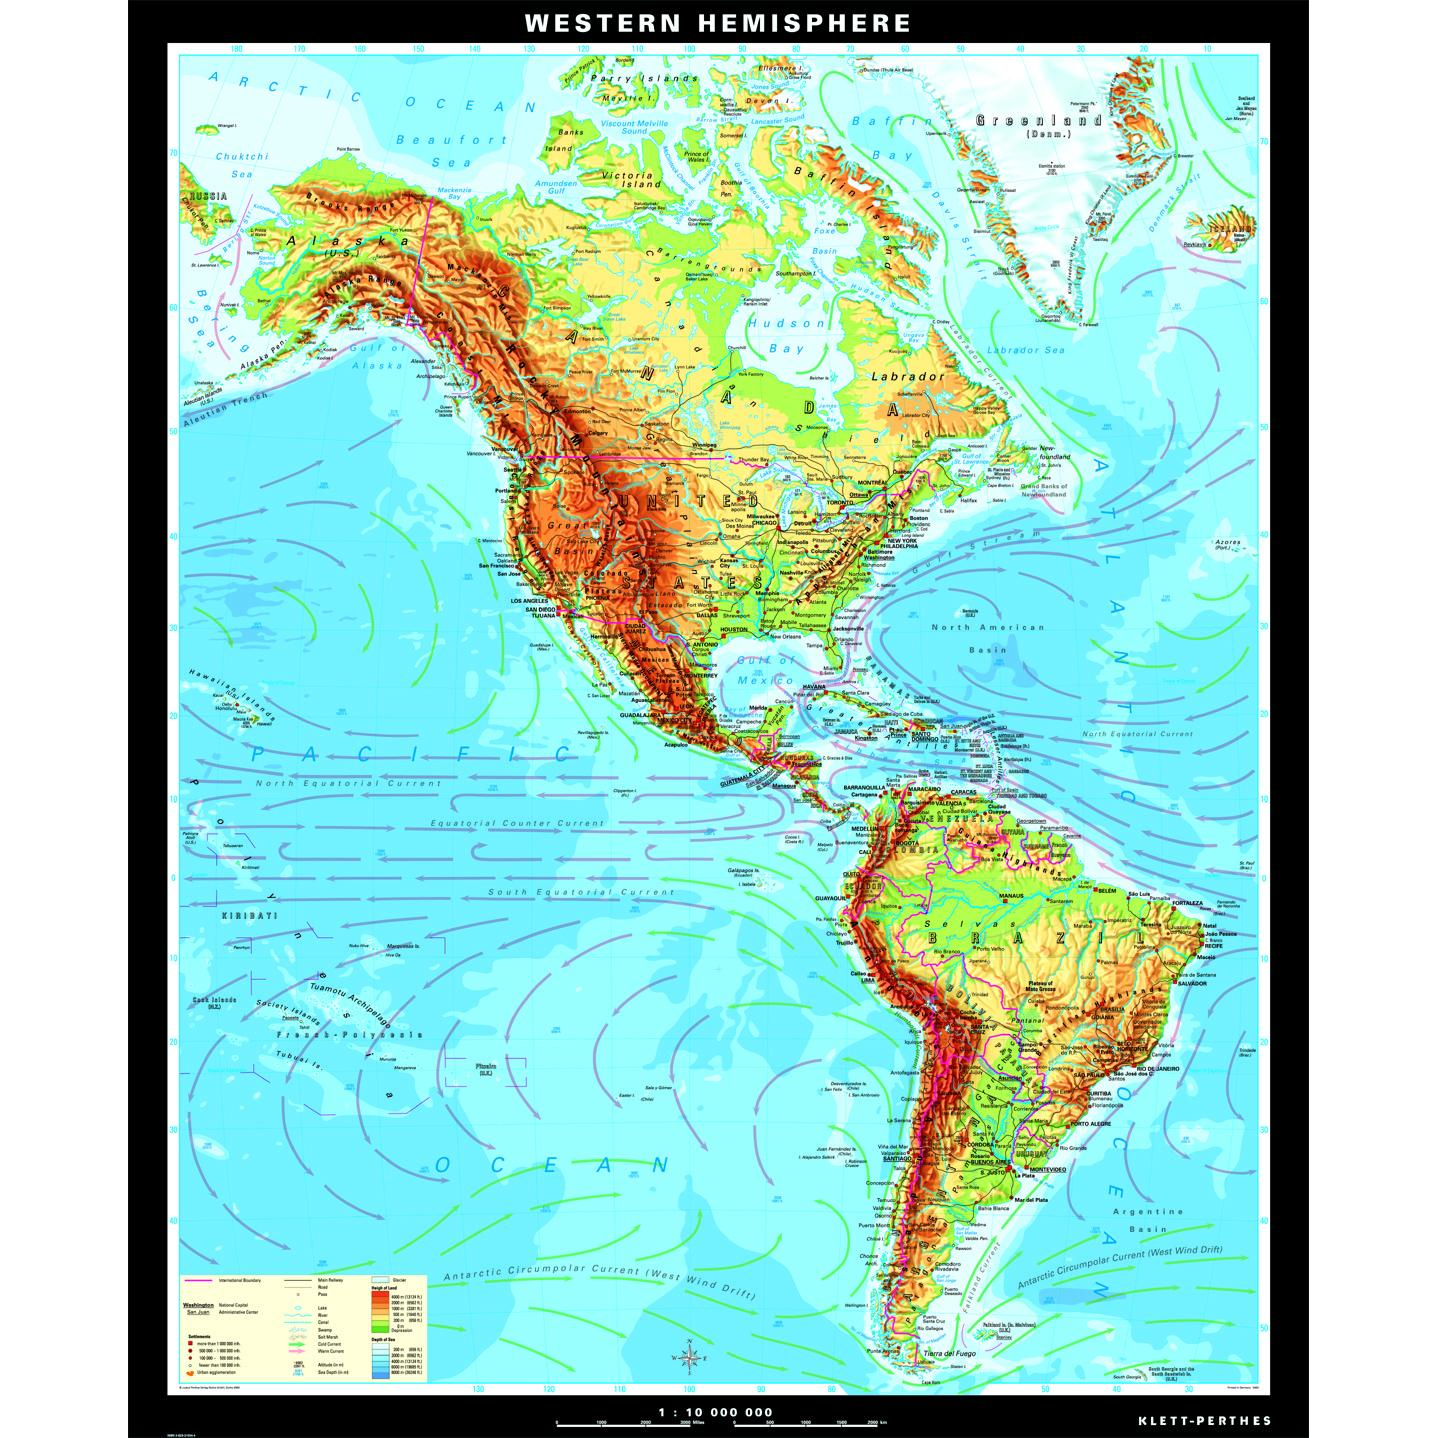 The Western Hemisphere Physical Map